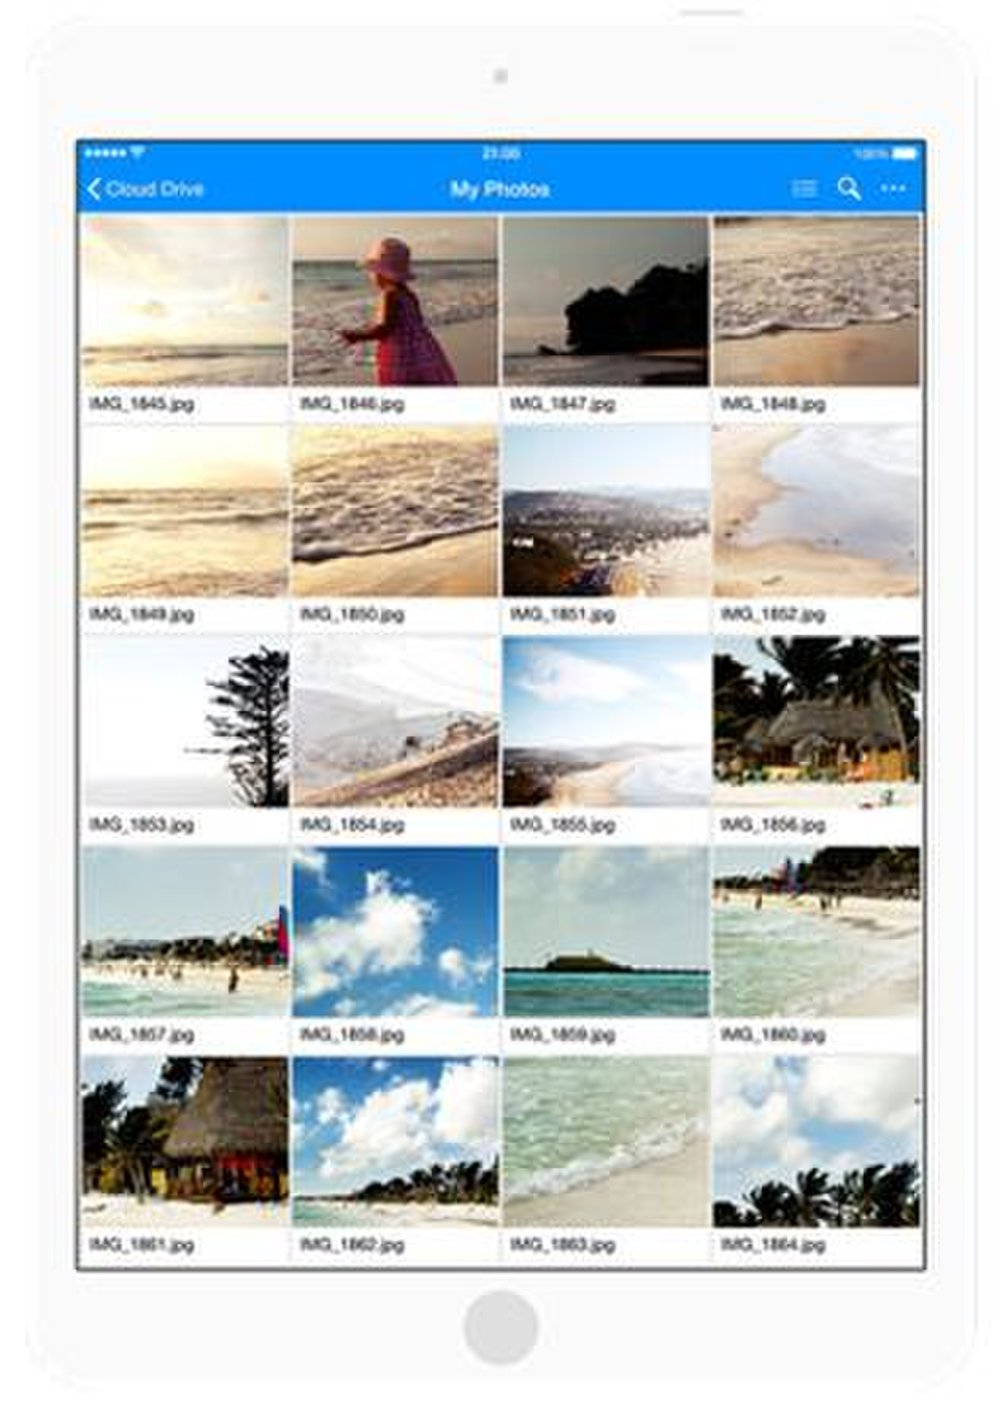 Amazon Drive image: Photos saved to this cloud service can be viewed as thumbnails in a gallery format.